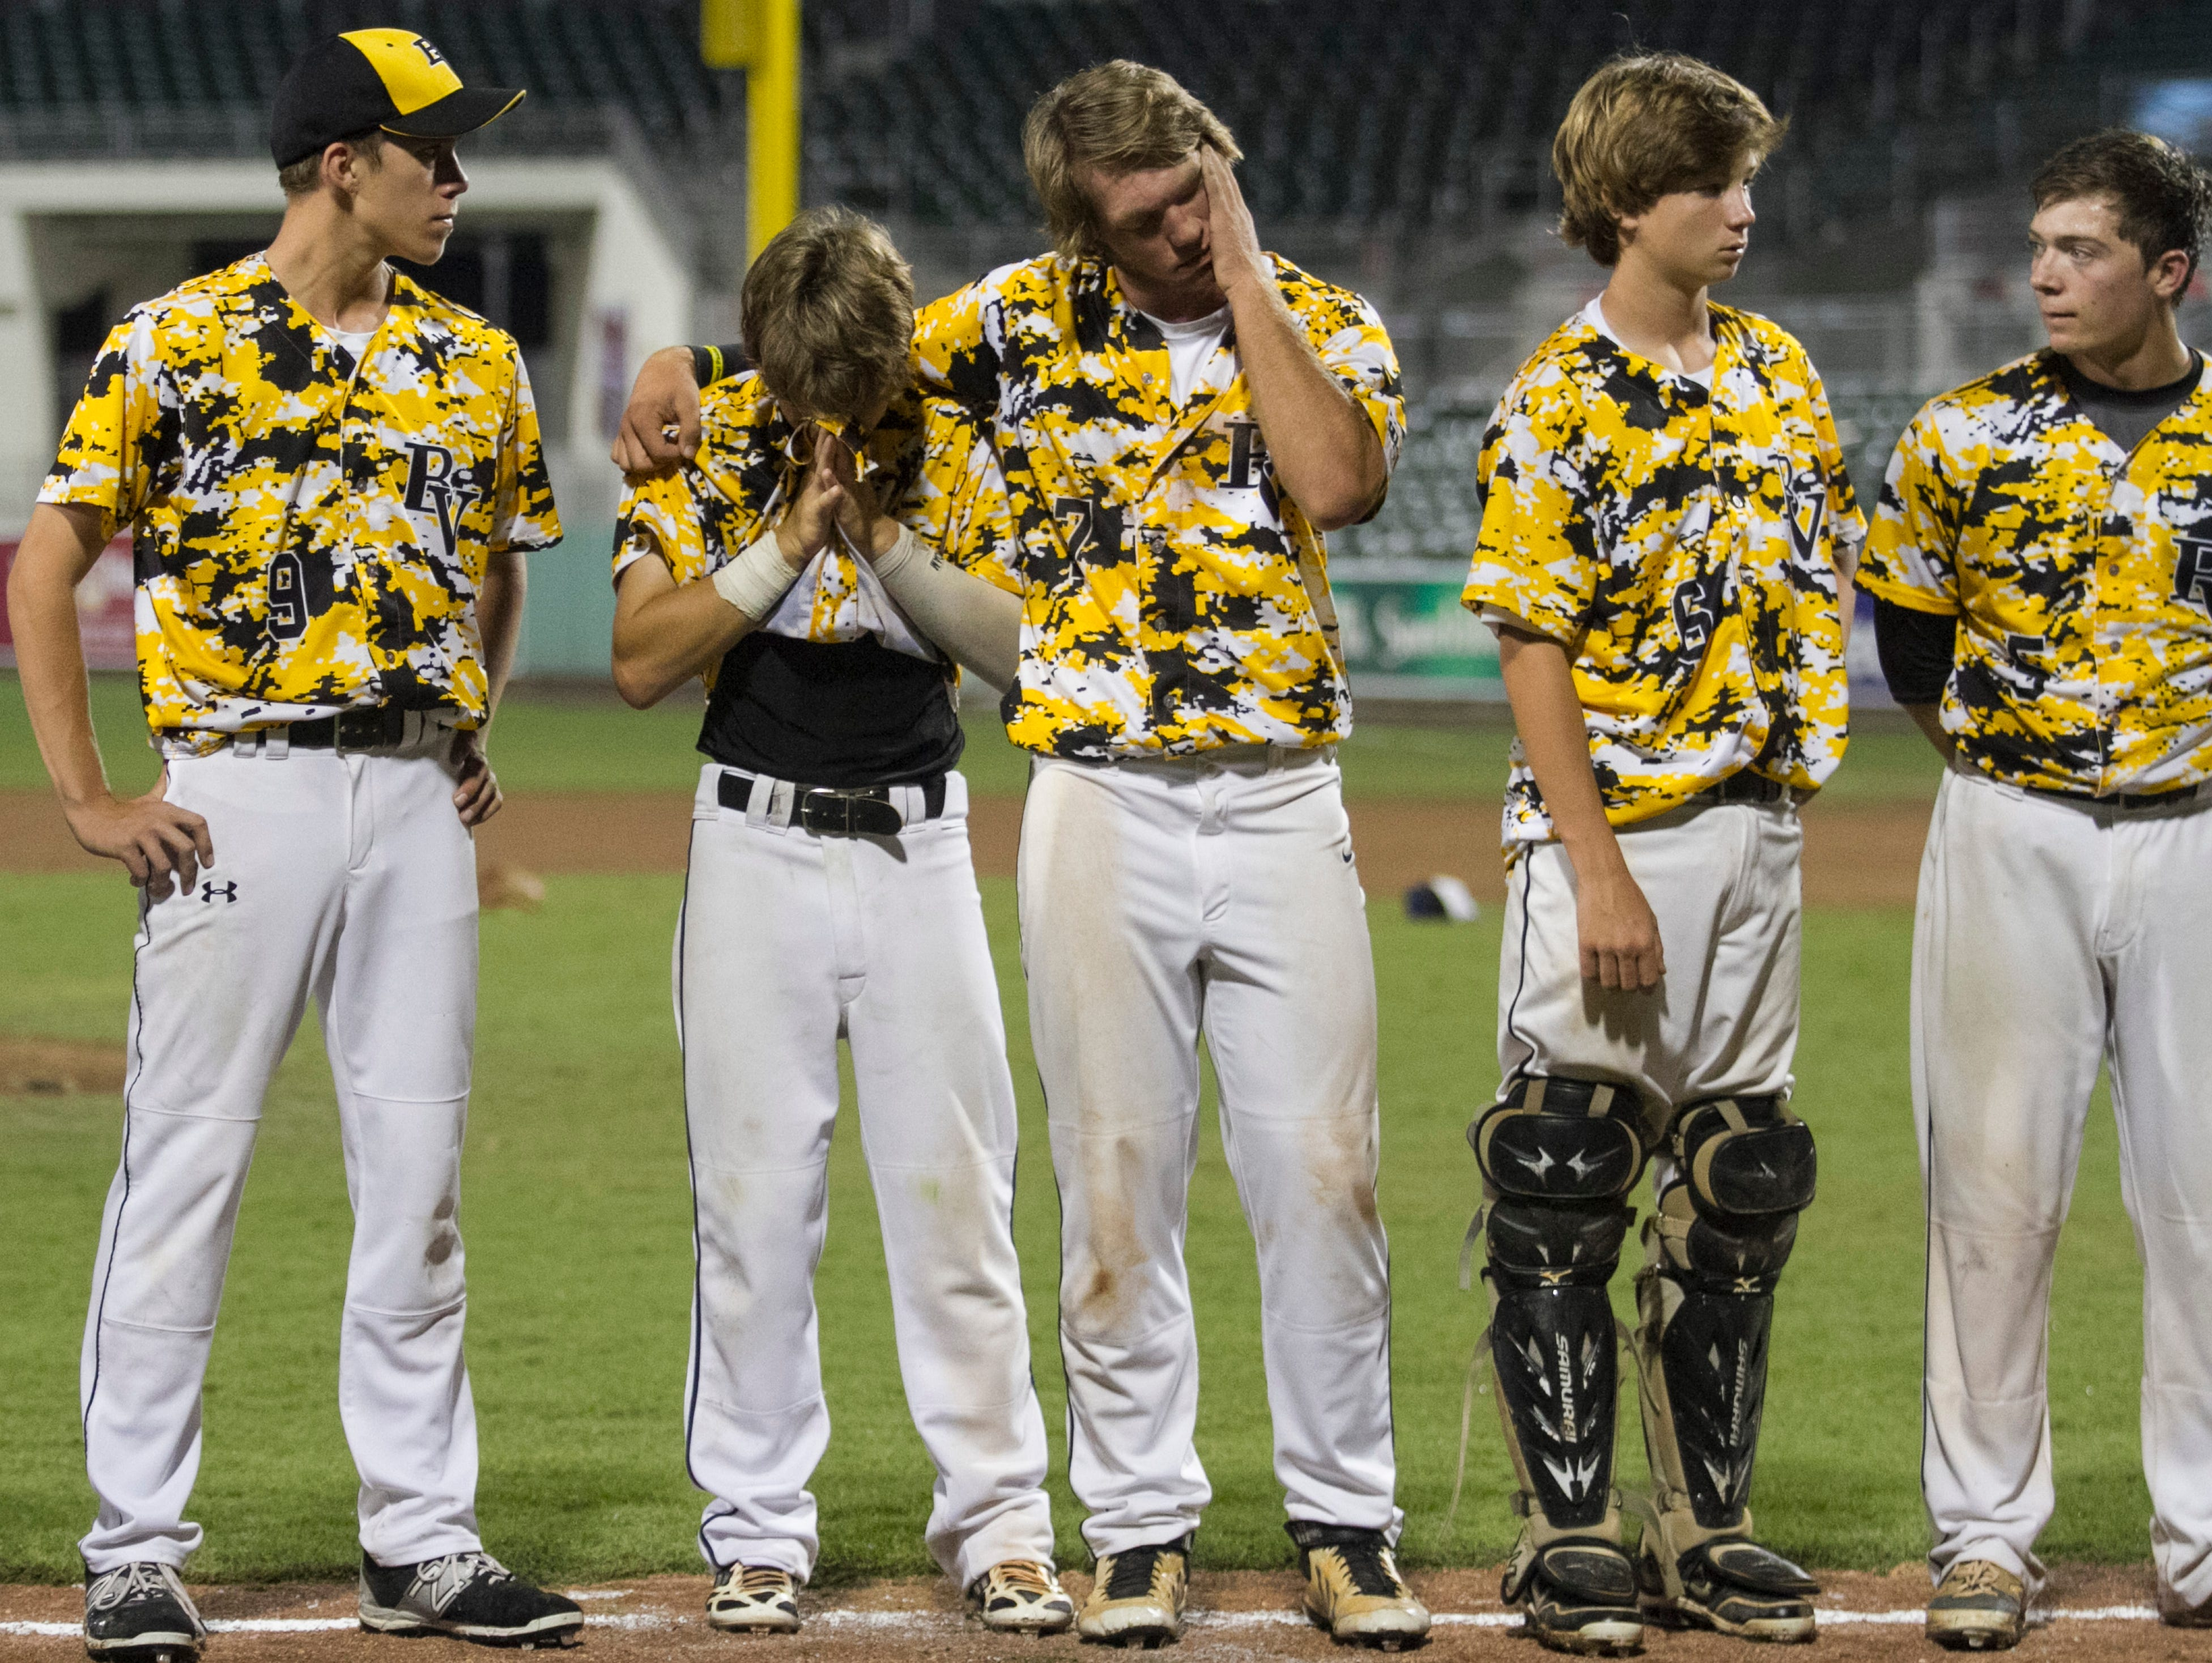 Bishop Verot players show their disappointment after losing to Jacksonville Trinity Christian in the Class 4A State Baseball final on Tuesday, May 19, 2015, at JetBlue Park in south Fort Myers.